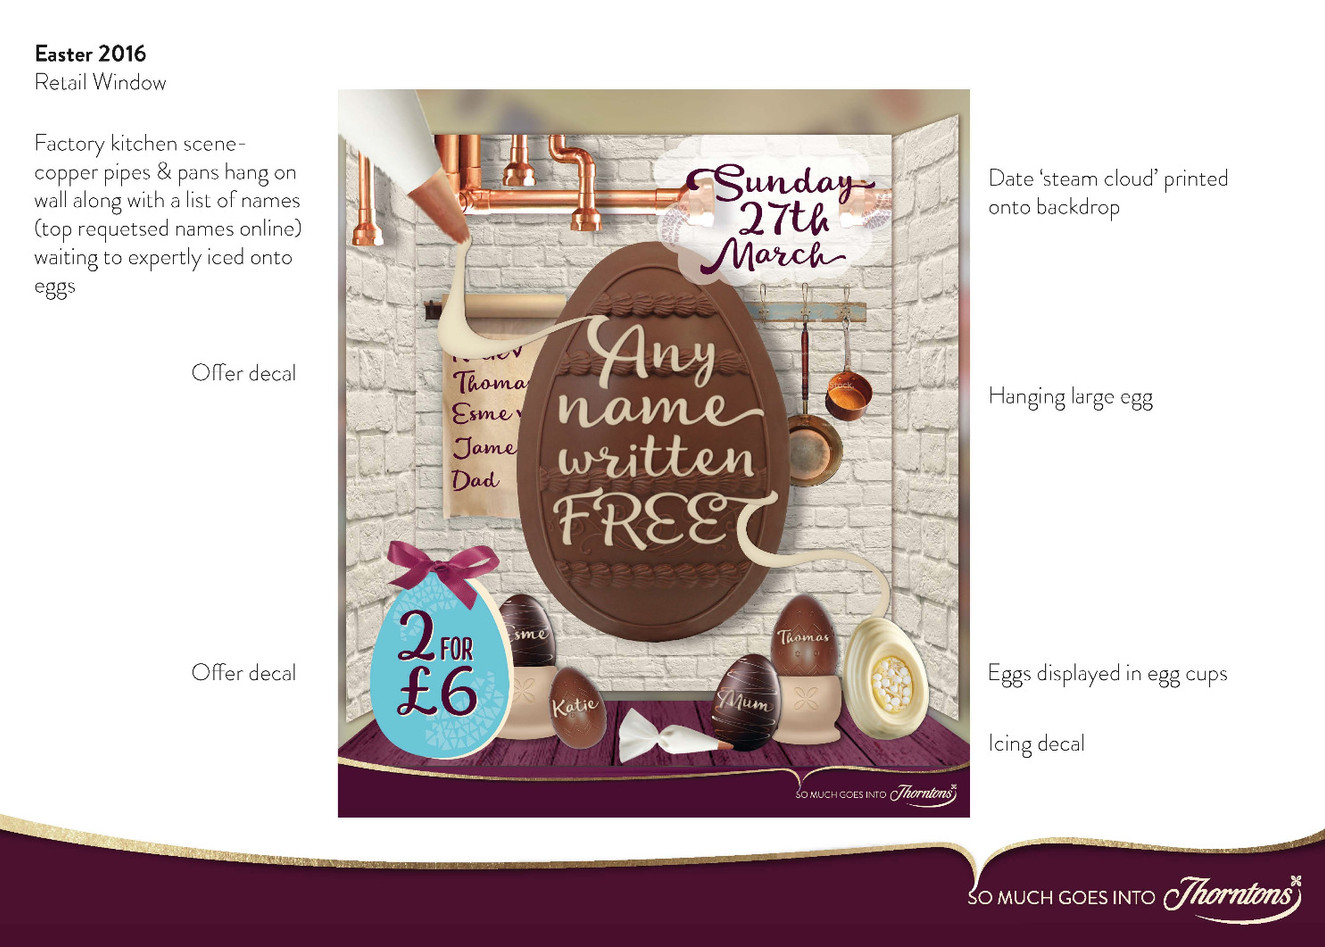 Thorntons seasonal retail campaign